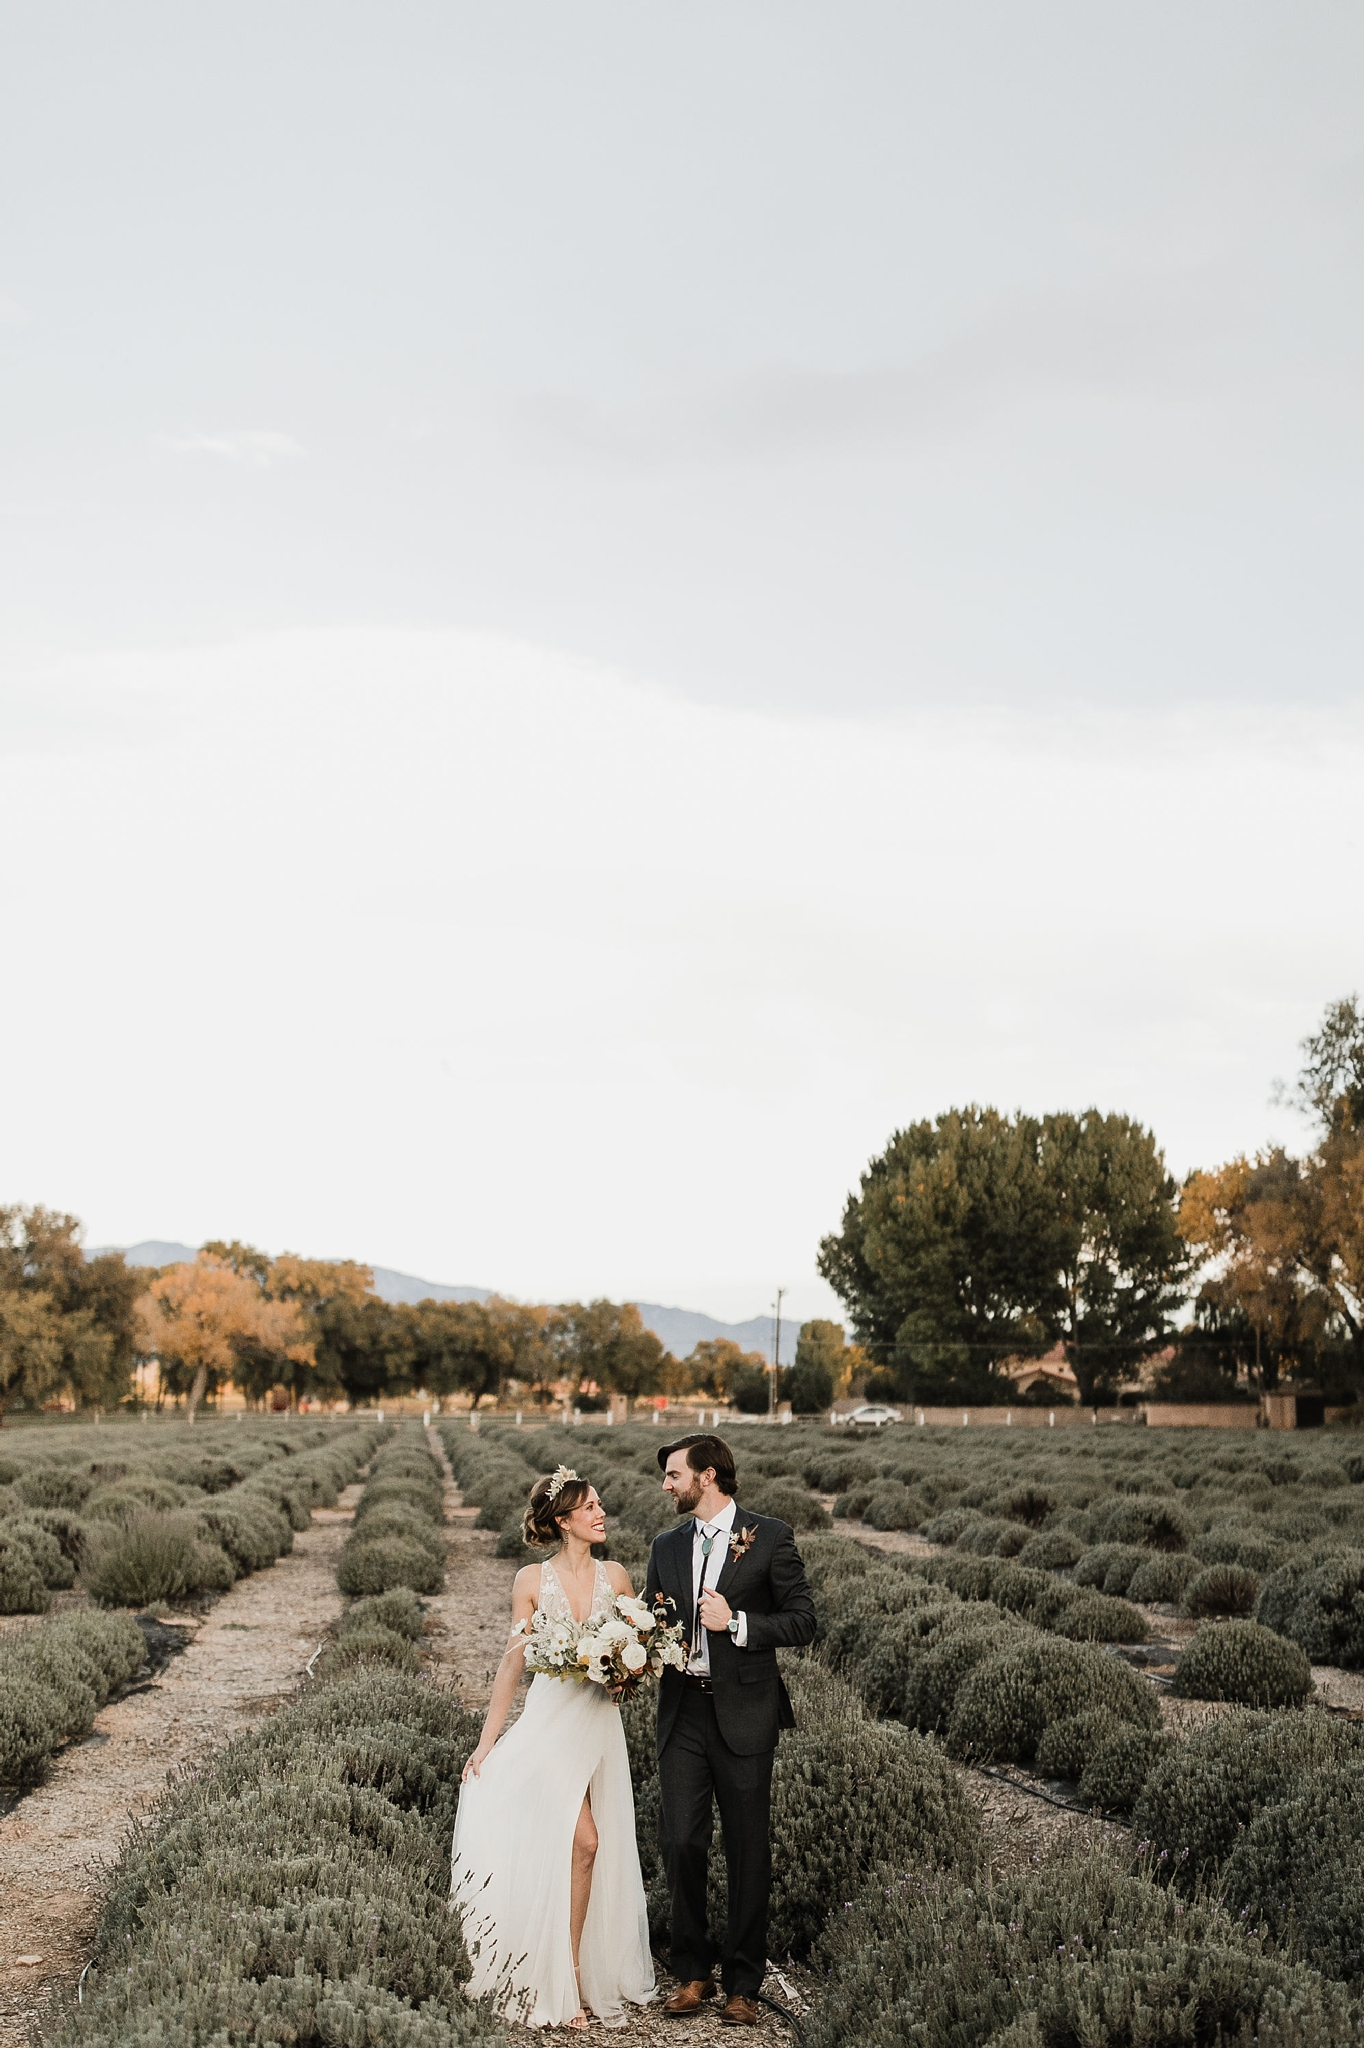 Alicia+lucia+photography+-+albuquerque+wedding+photographer+-+santa+fe+wedding+photography+-+new+mexico+wedding+photographer+-+new+mexico+wedding+-+albuquerque+wedding+-+rocky+mountain+bride+-+los+poblanos+wedding_0096.jpg